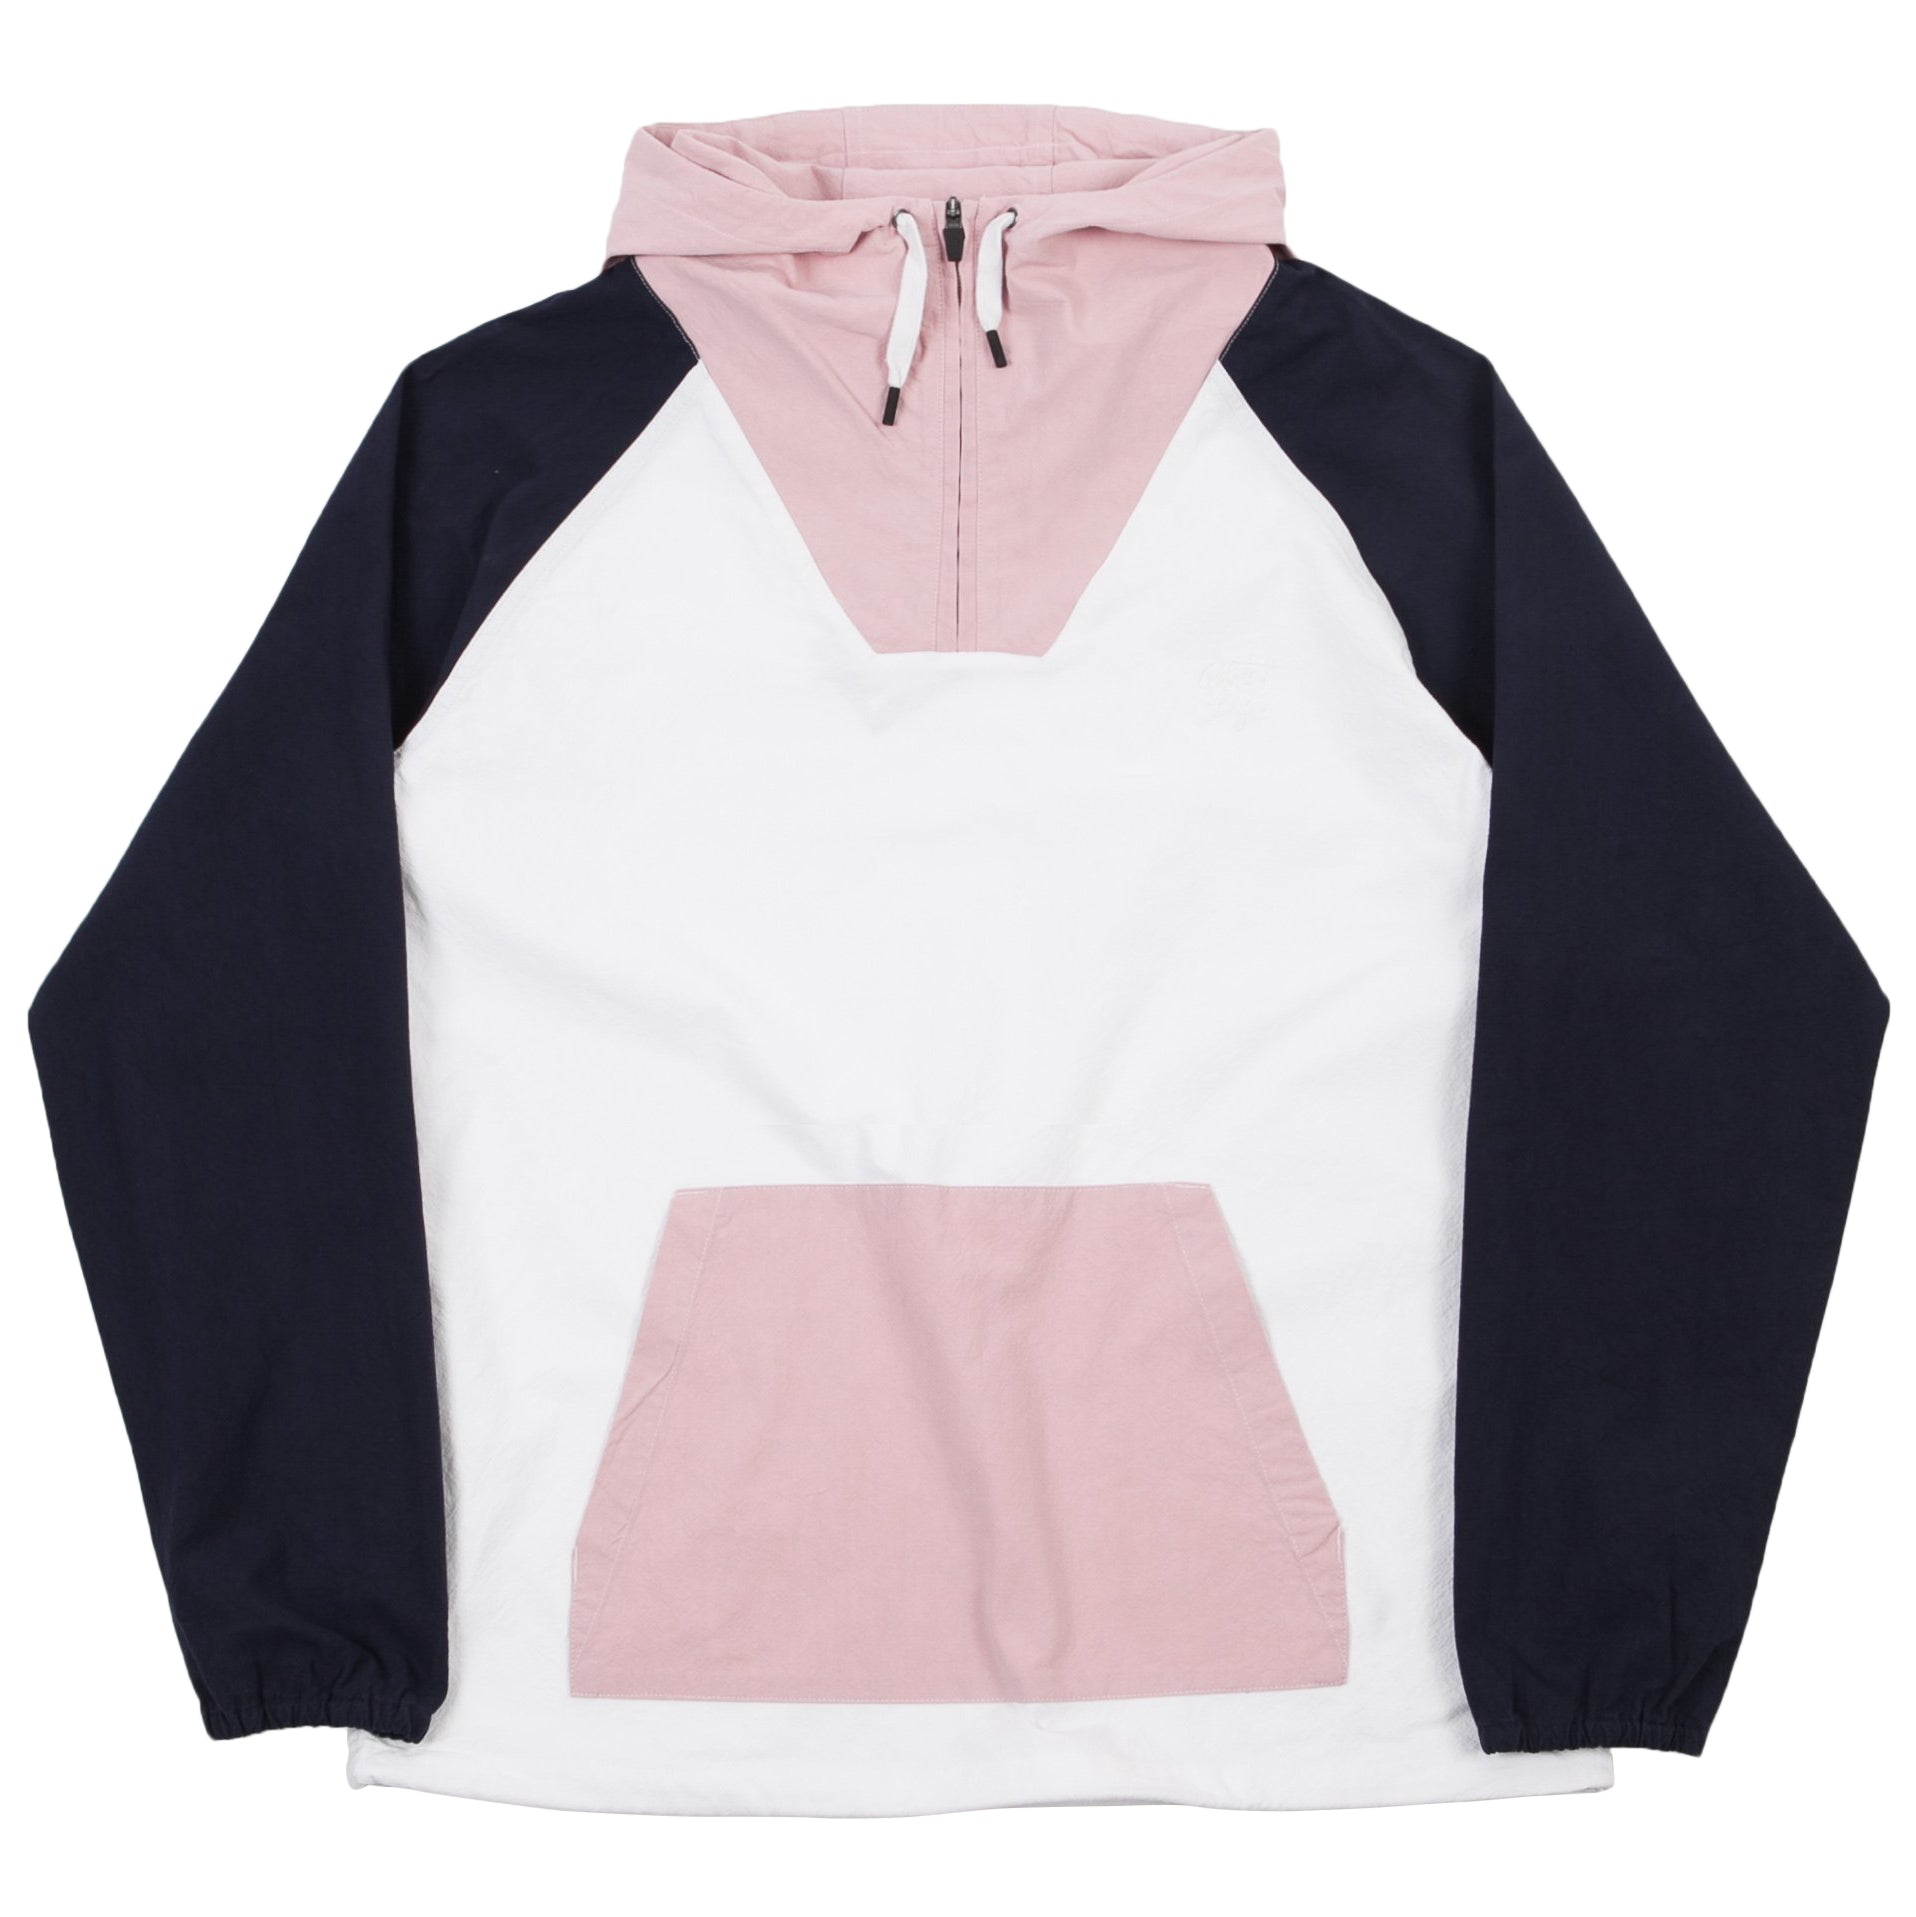 Boardwalk Windy Pullover White/Navy/Pink